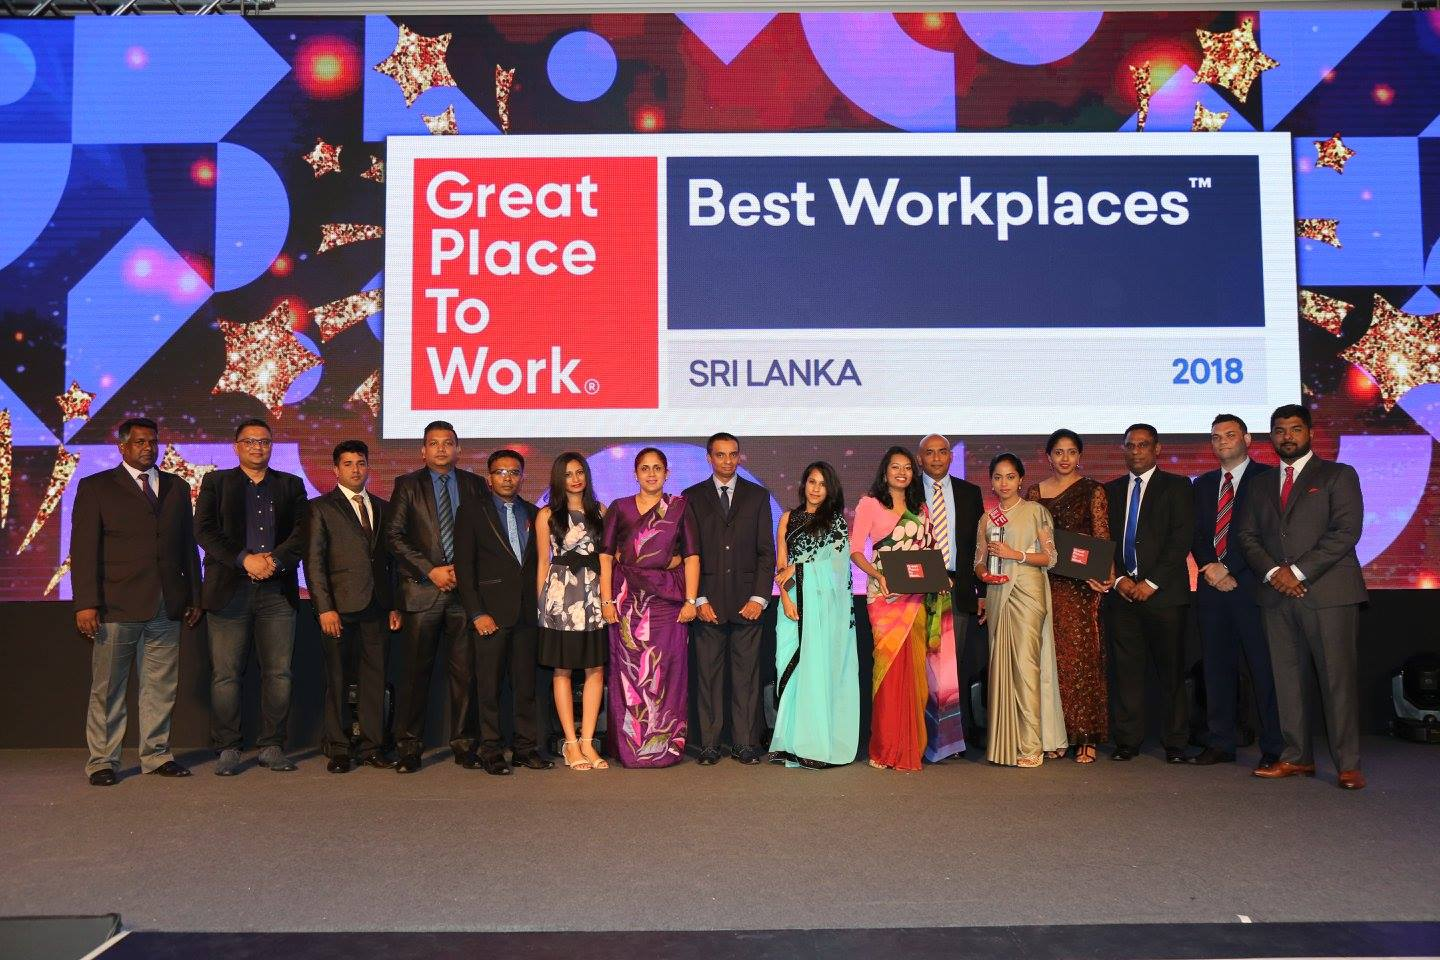 MHE - a great place to work